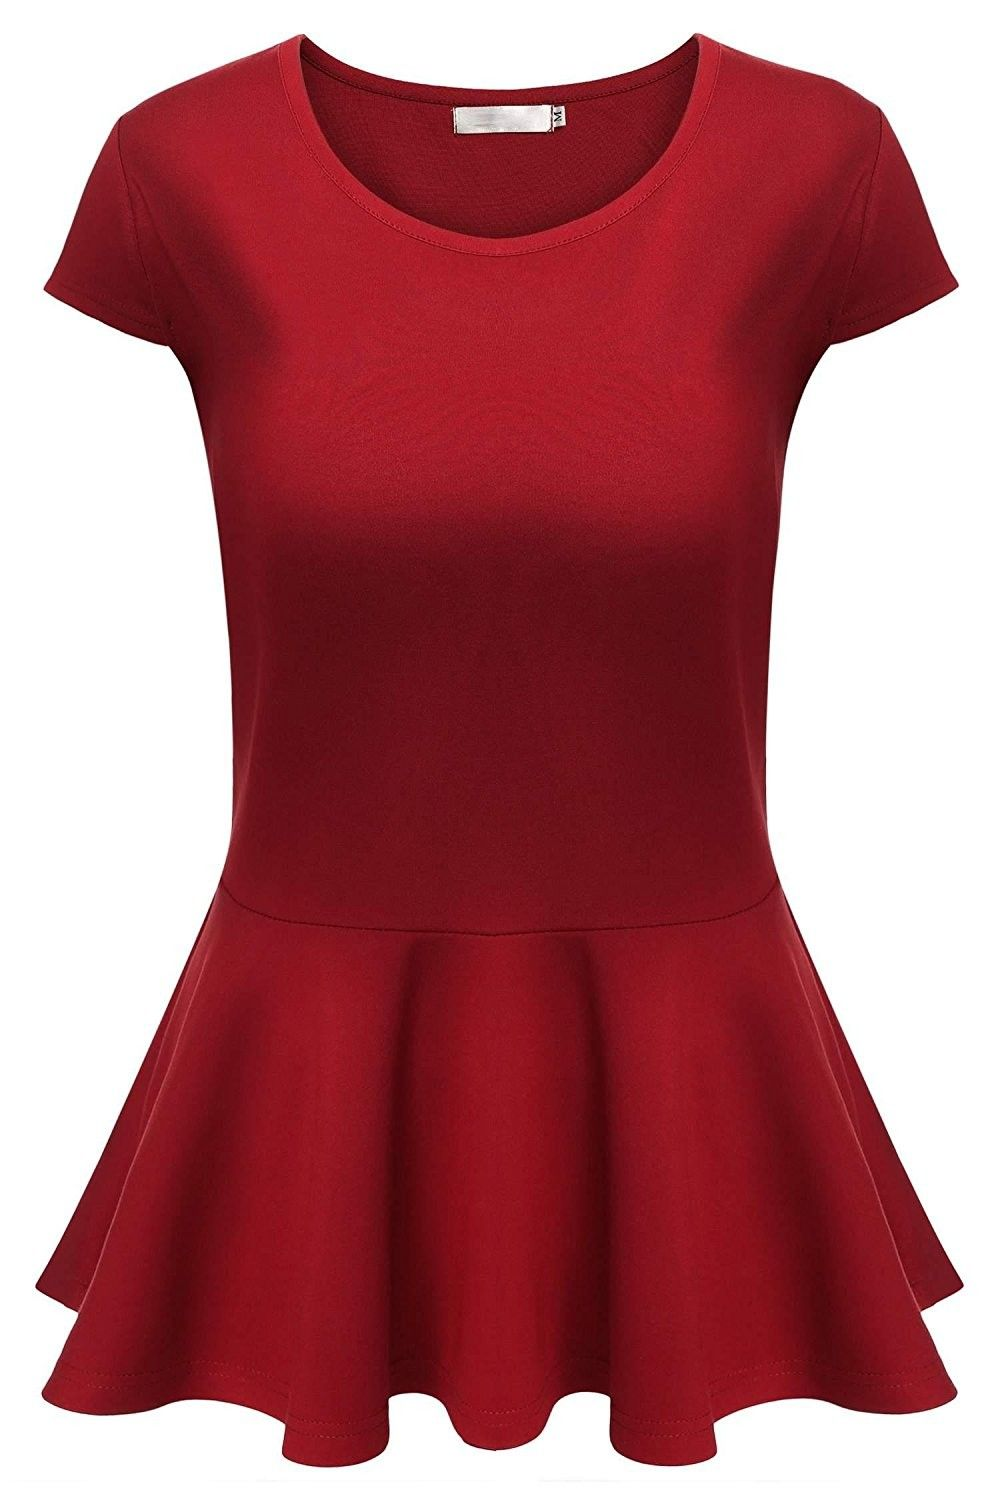 15f74c1b Women's Cap Sleeve Stretchy Flare Bottom Fitted Peplum Blouse Tops - Red -  C8184ROA3RE,Women's Clothing, Tops & Tees, Blouses & Button-Down Shirts # women ...